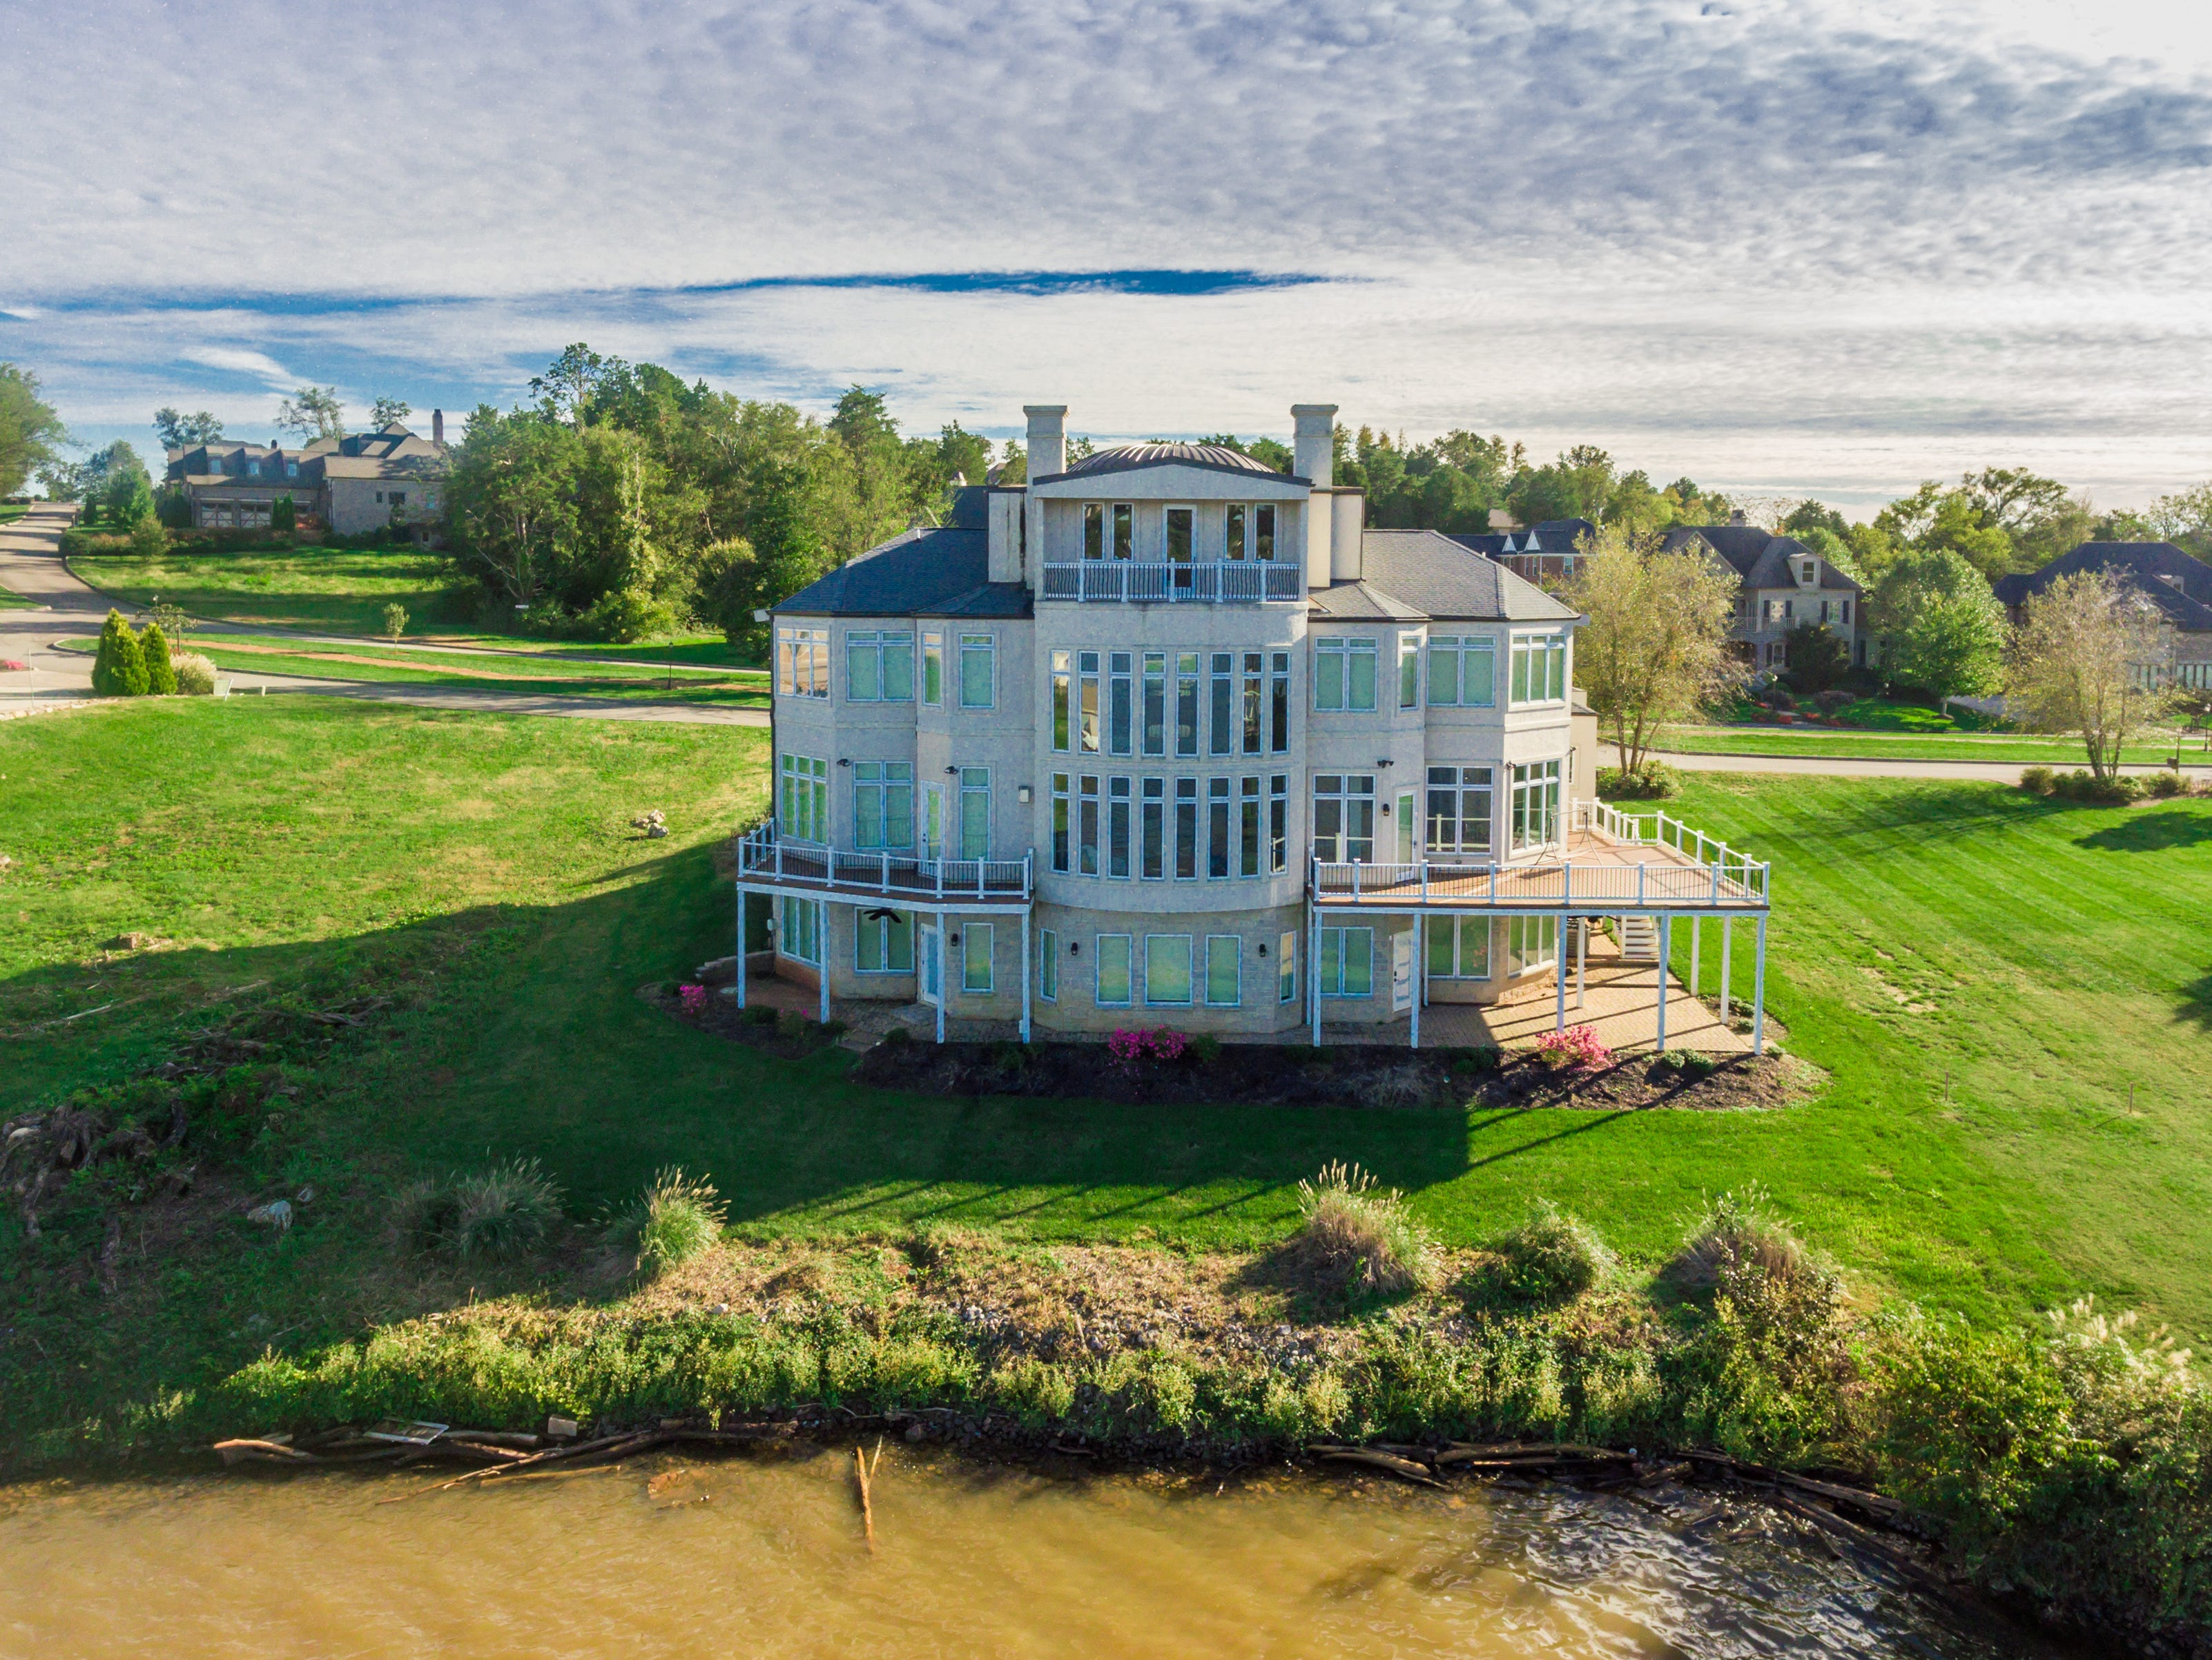 The back of the mansion at 1439 Charlottesville Blvd looks out onto Fort Loudoun Lake.